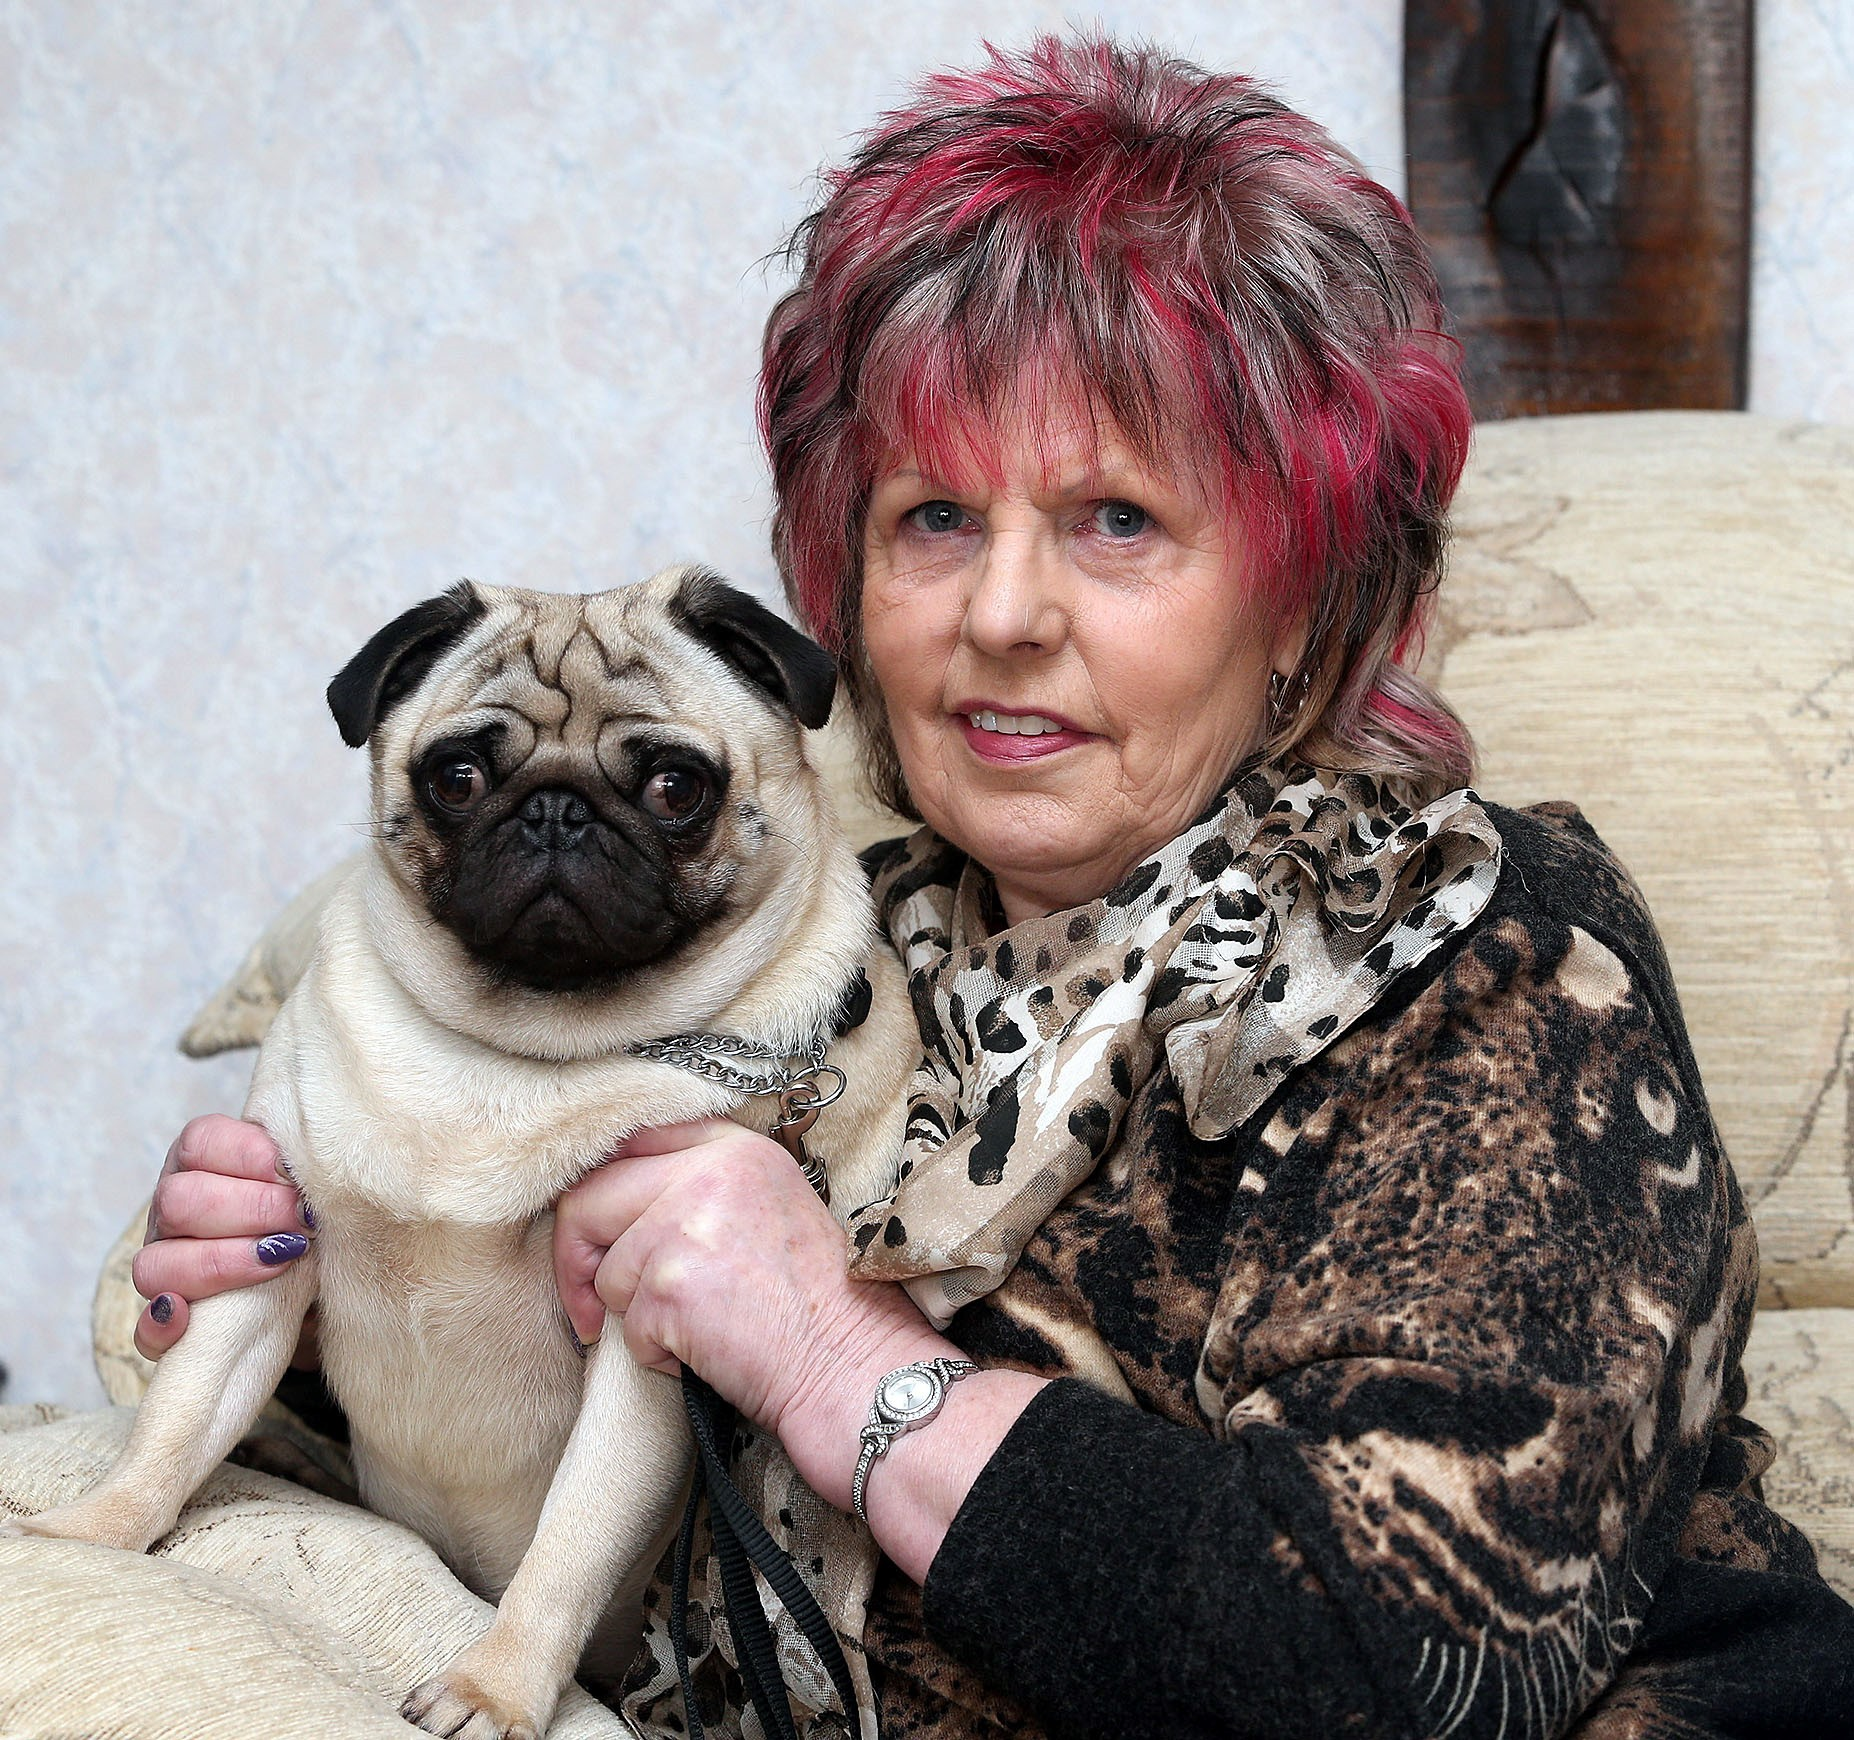 Netherton woman's passion for pugs makes her top dog at Crufts